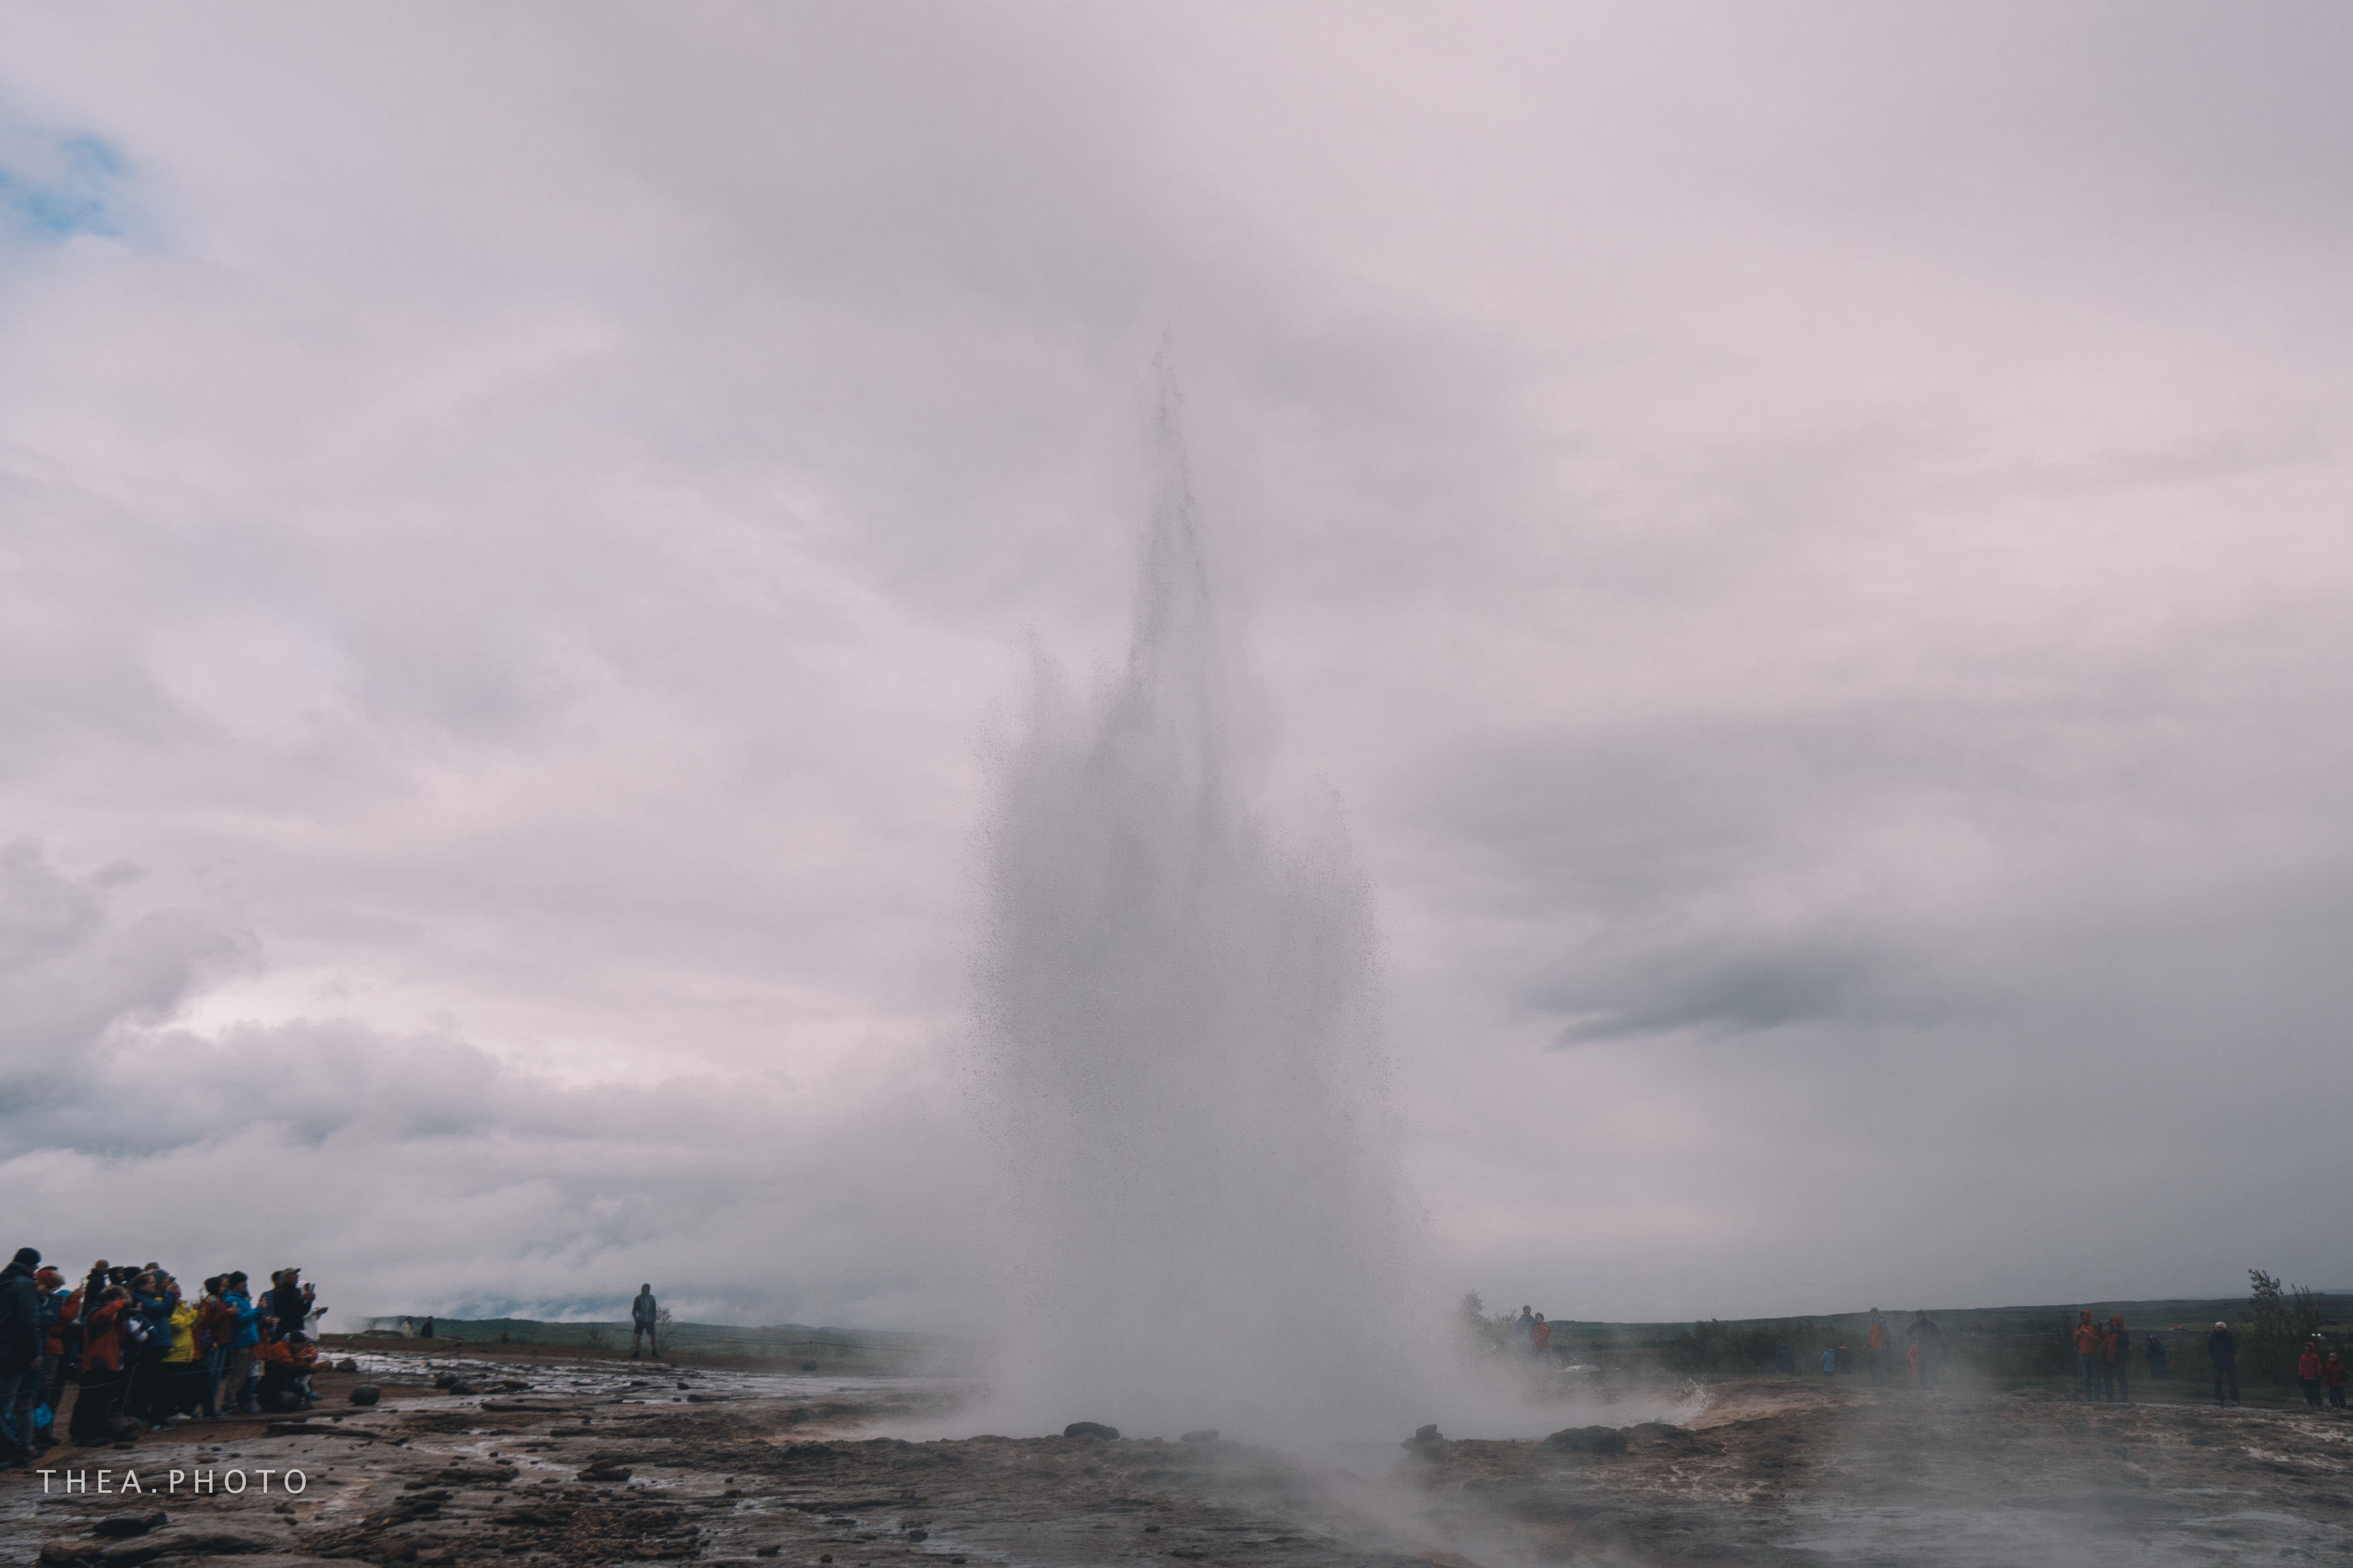 Eruption Strokkur, an active geysir